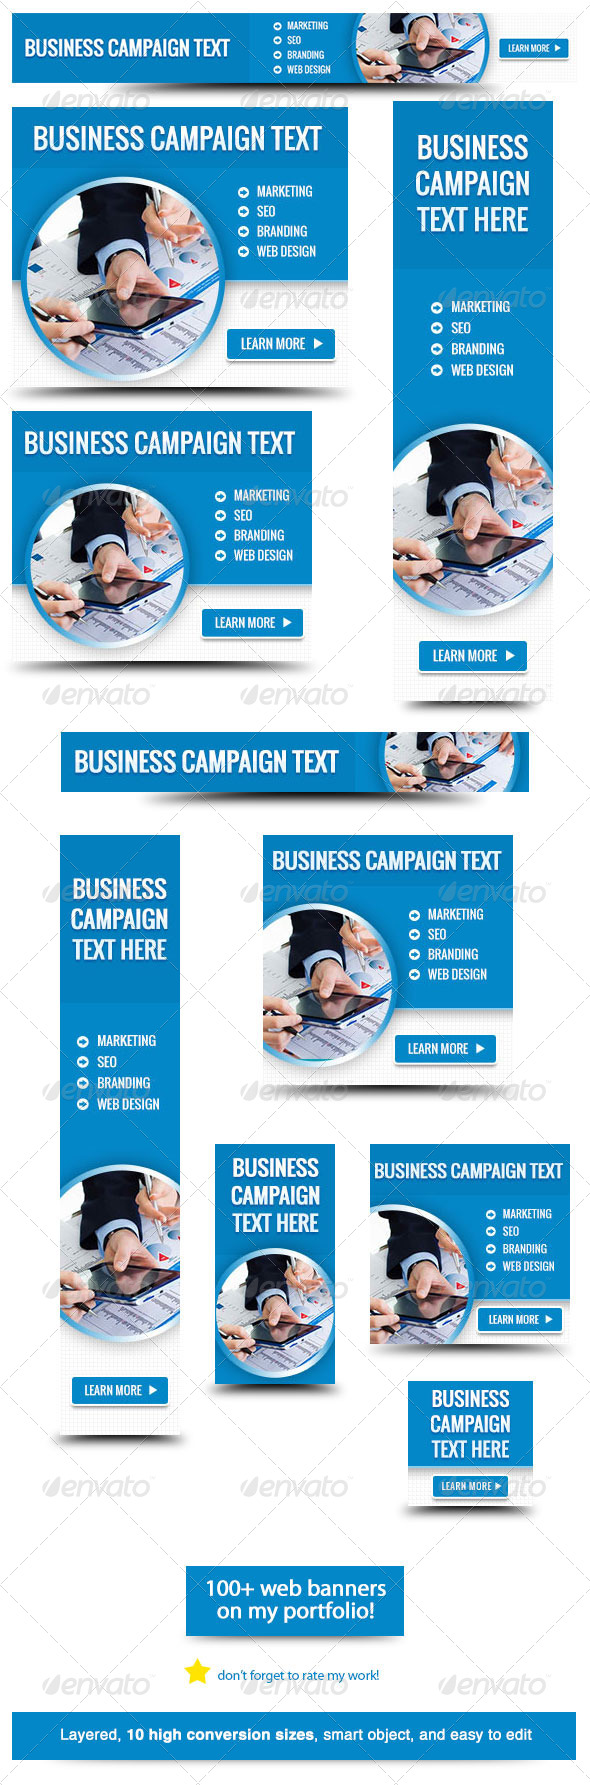 Corporate Web Banner Design Template 33 by admiral_adictus ...